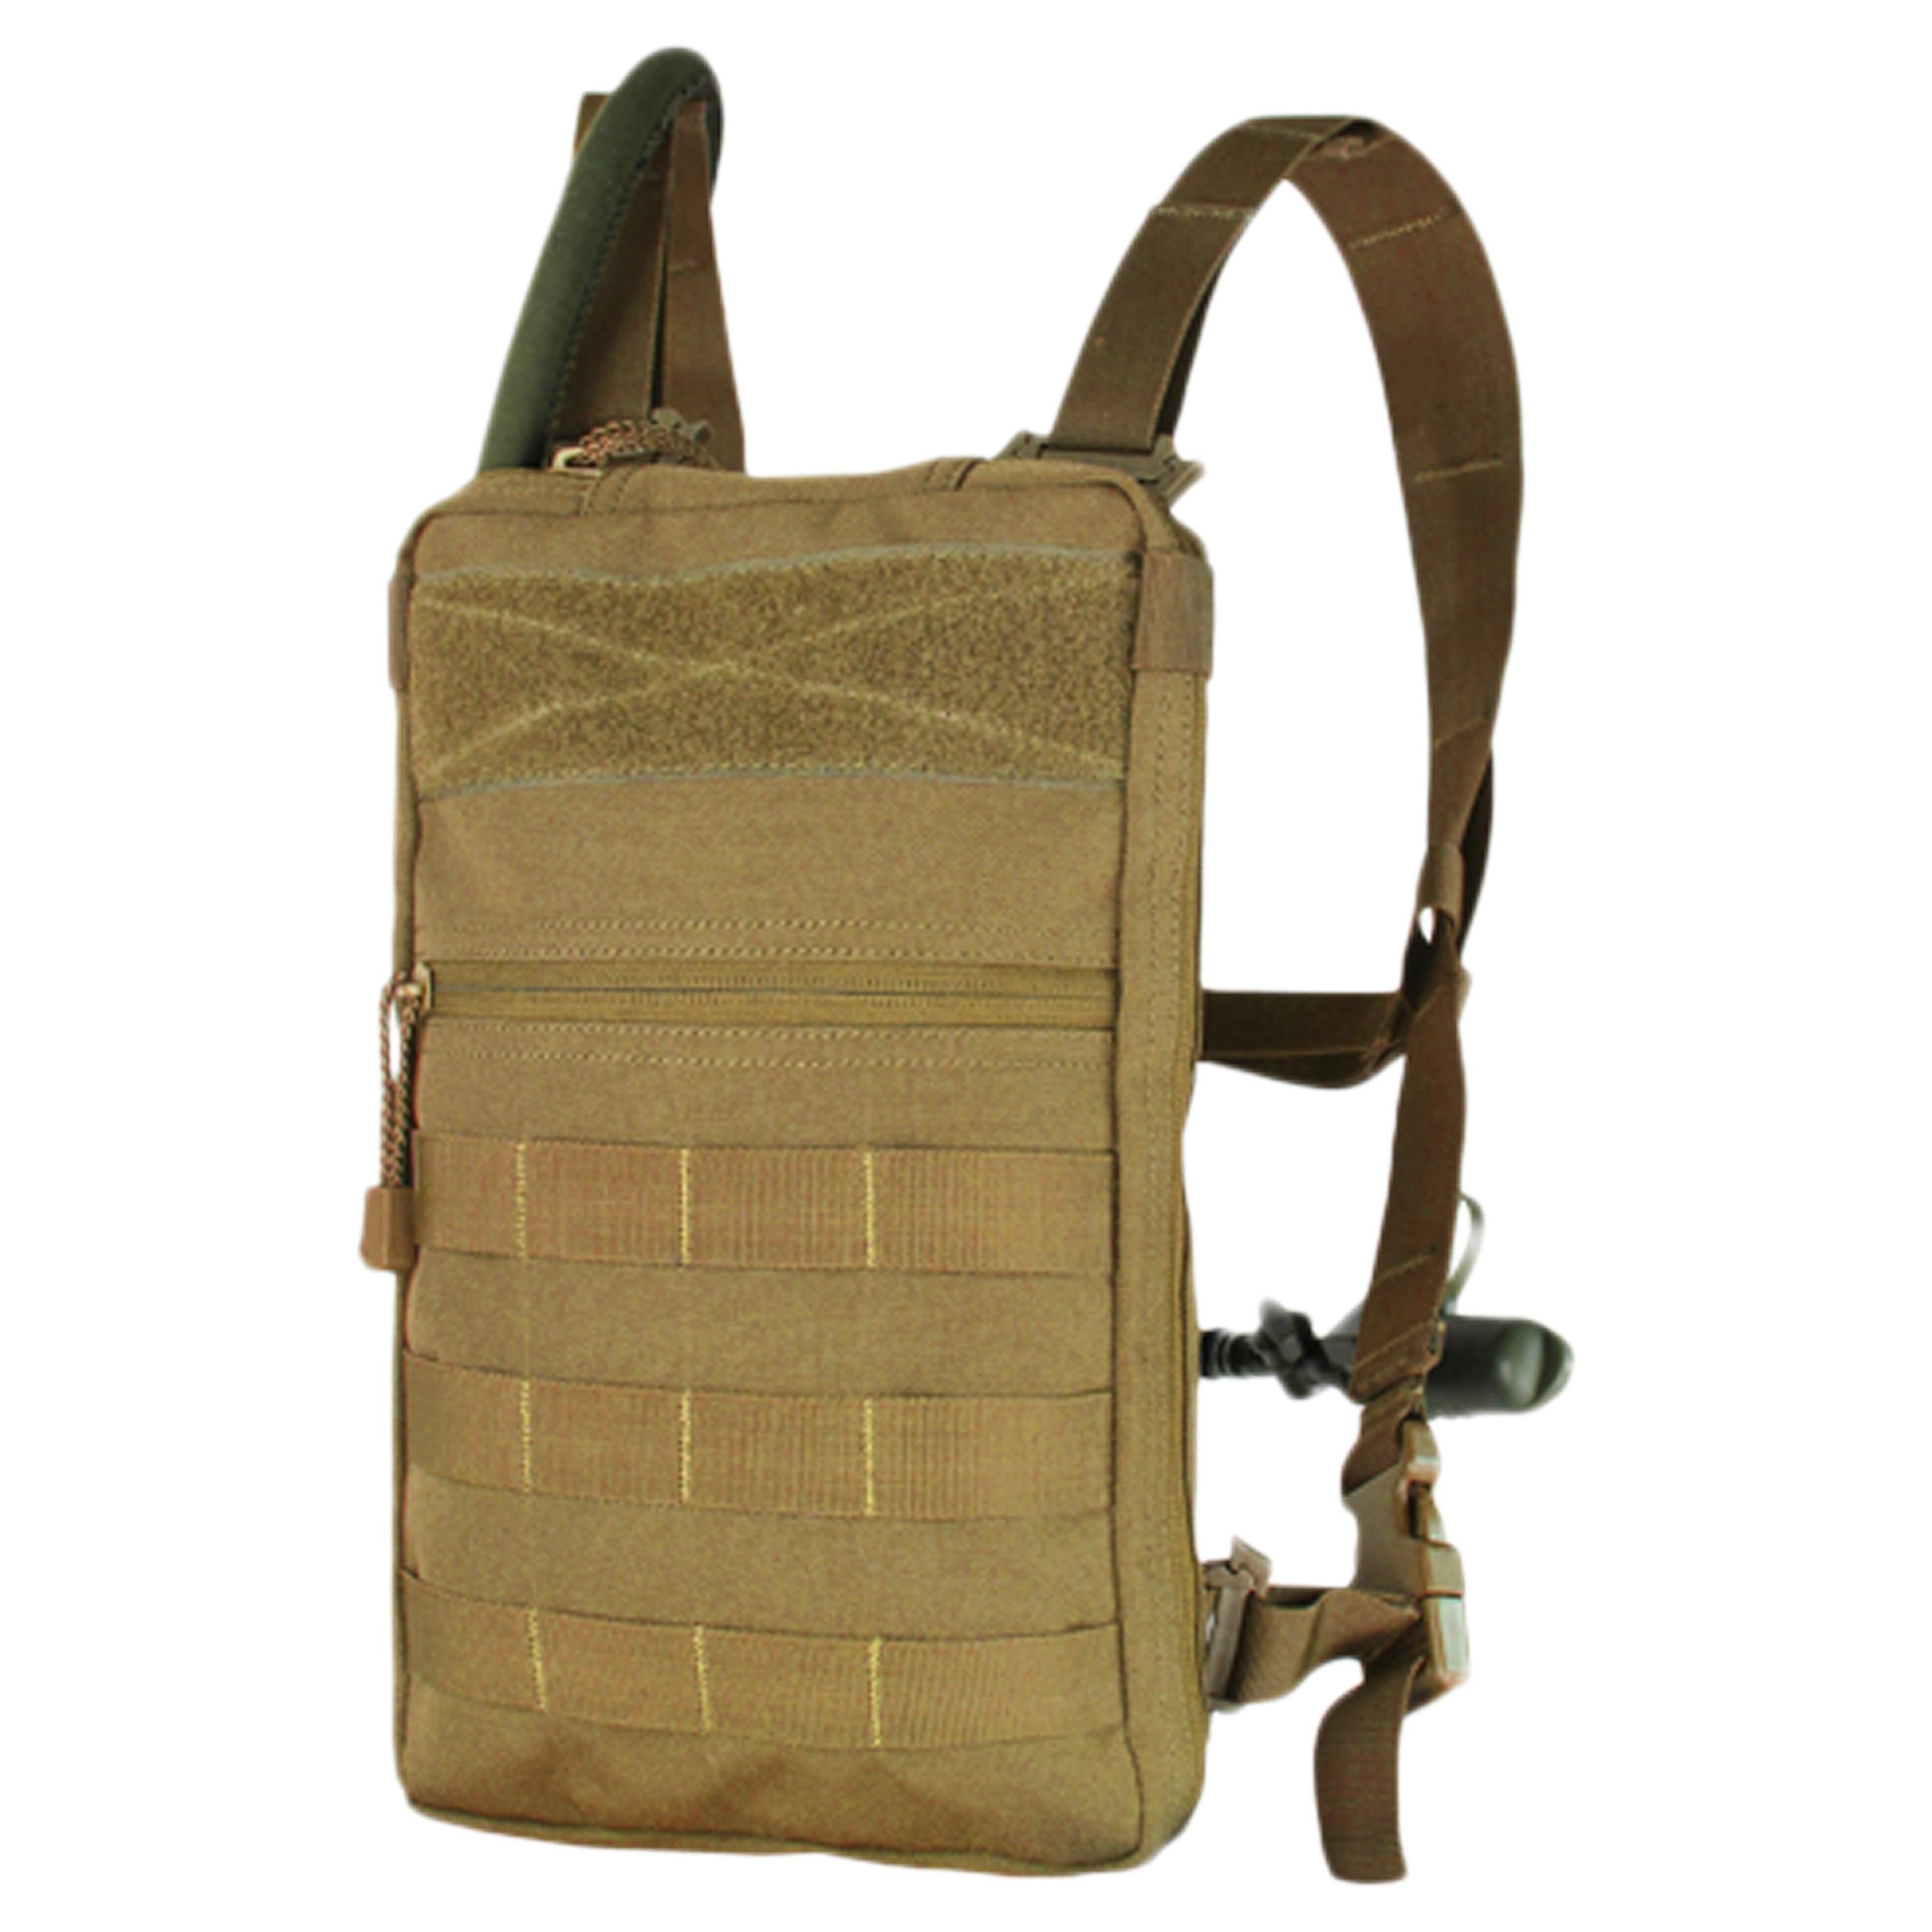 Condor Hydration Carrier Tidepool 1,5 L coyote brown